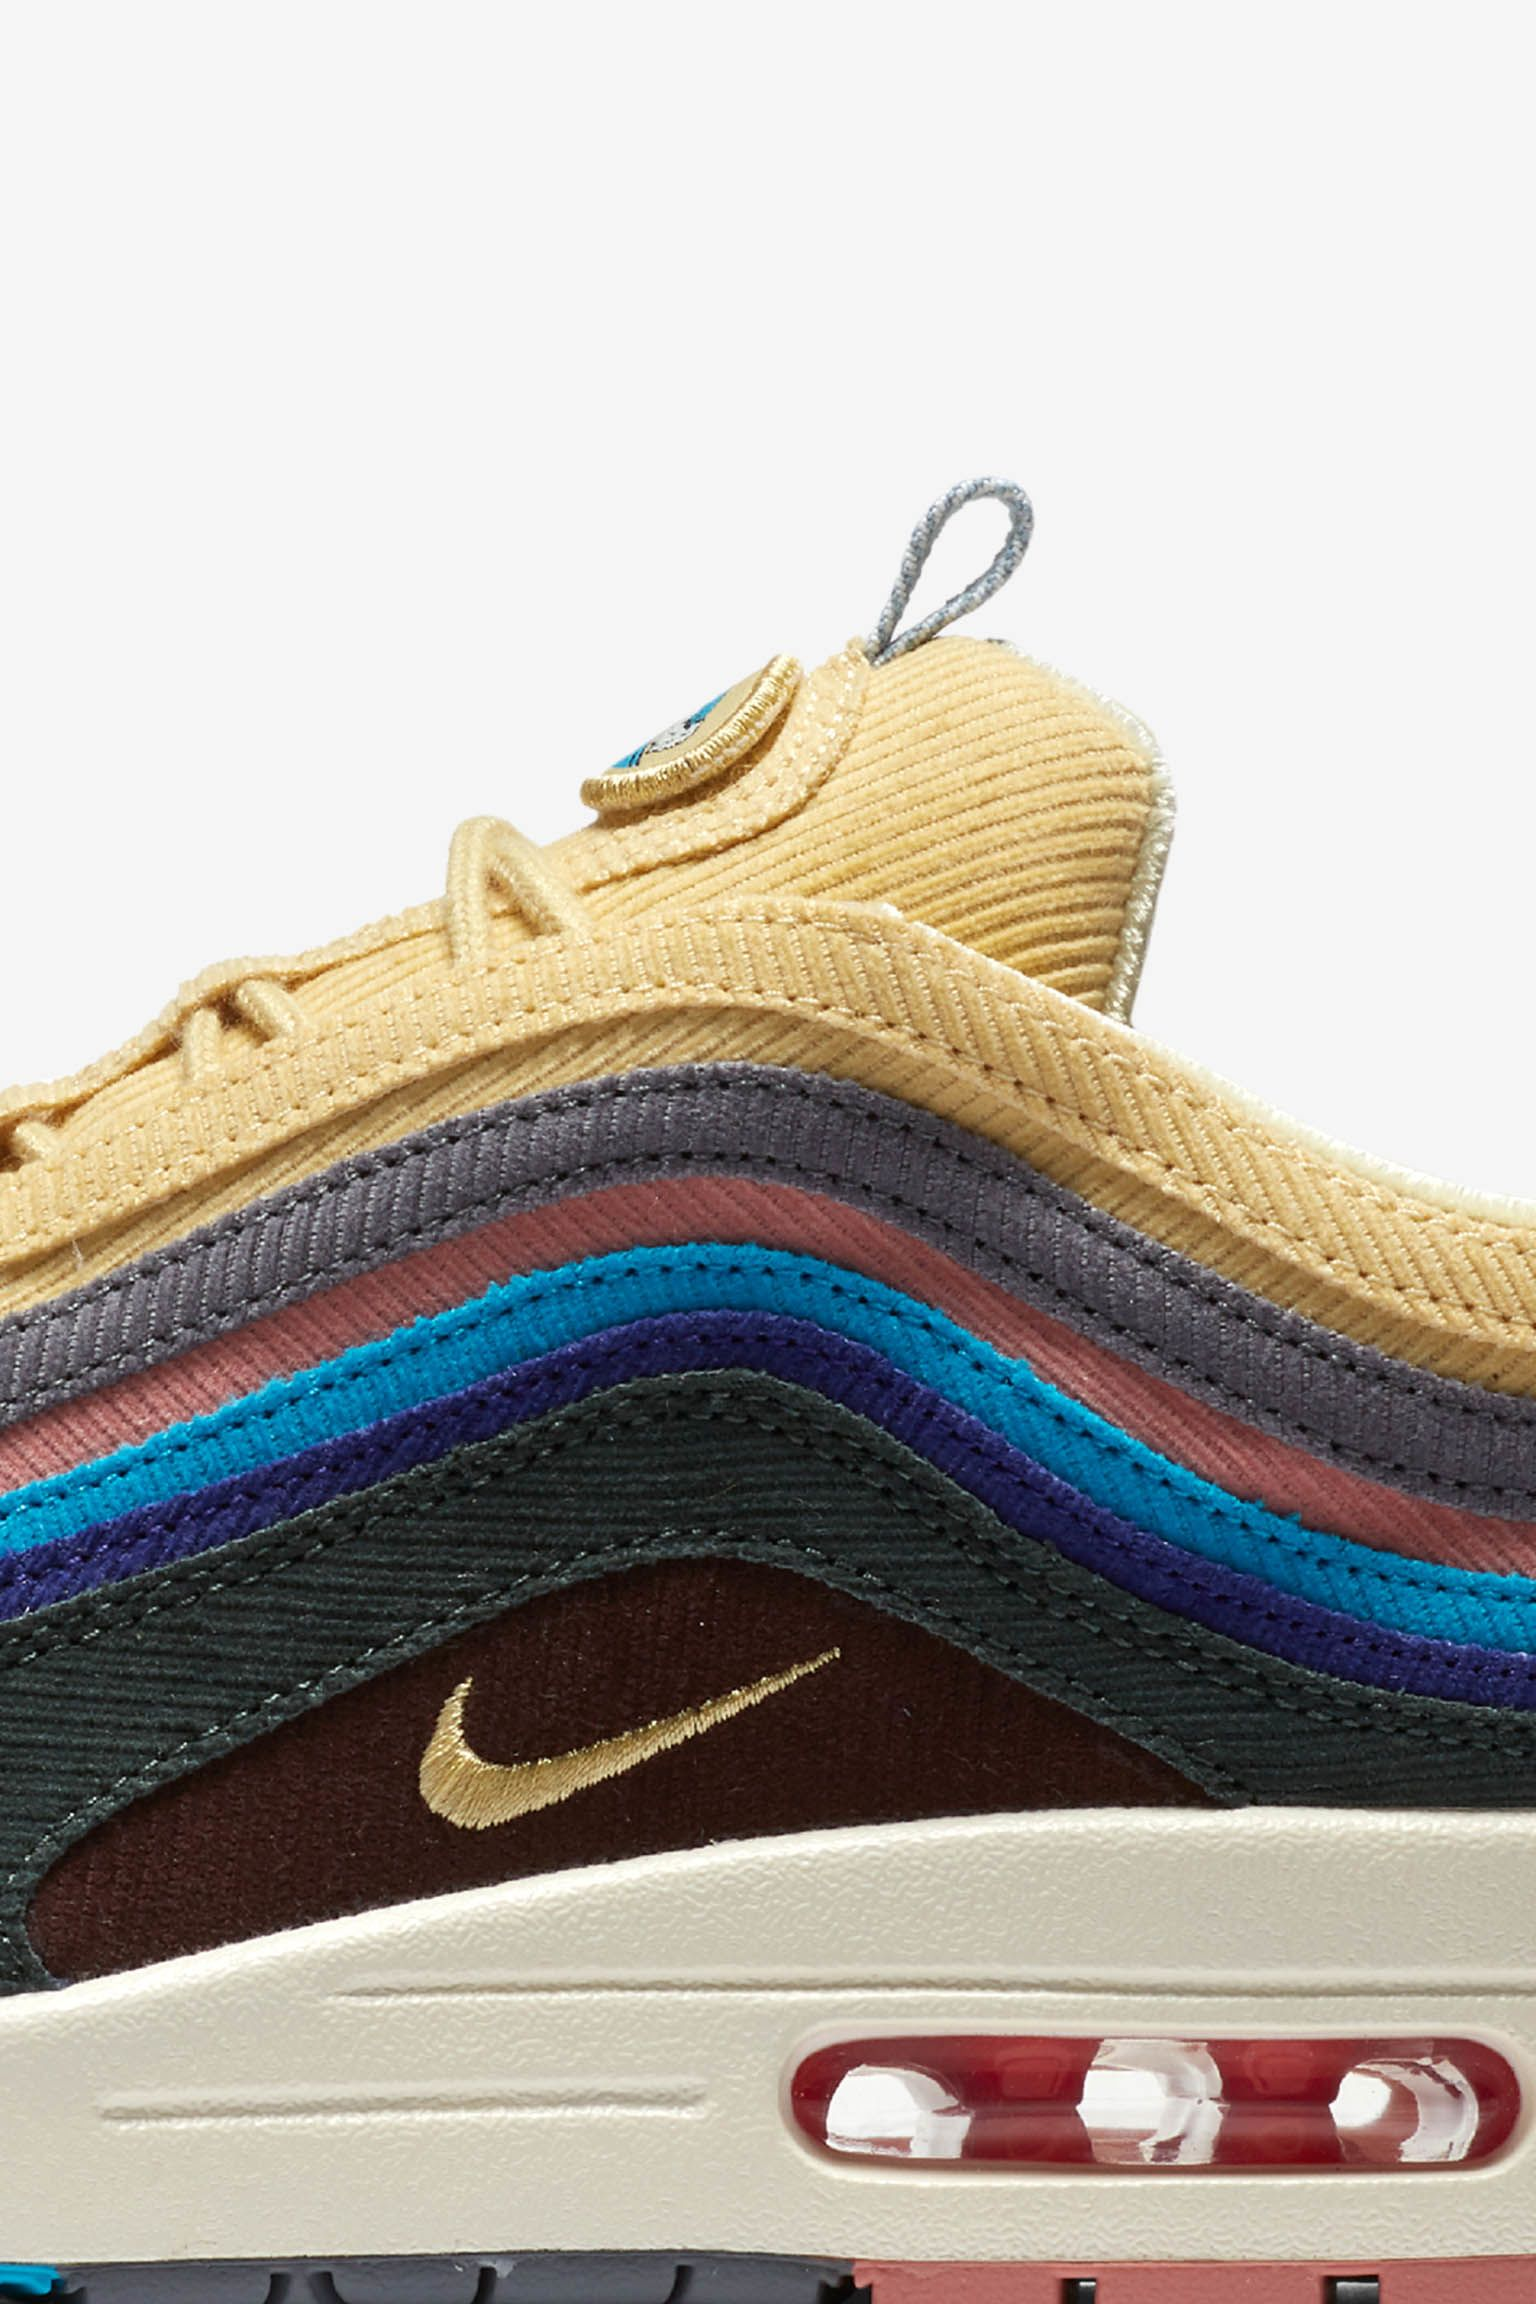 Nike Air Max 1/97 'Sean Wotherspoon' Release Date